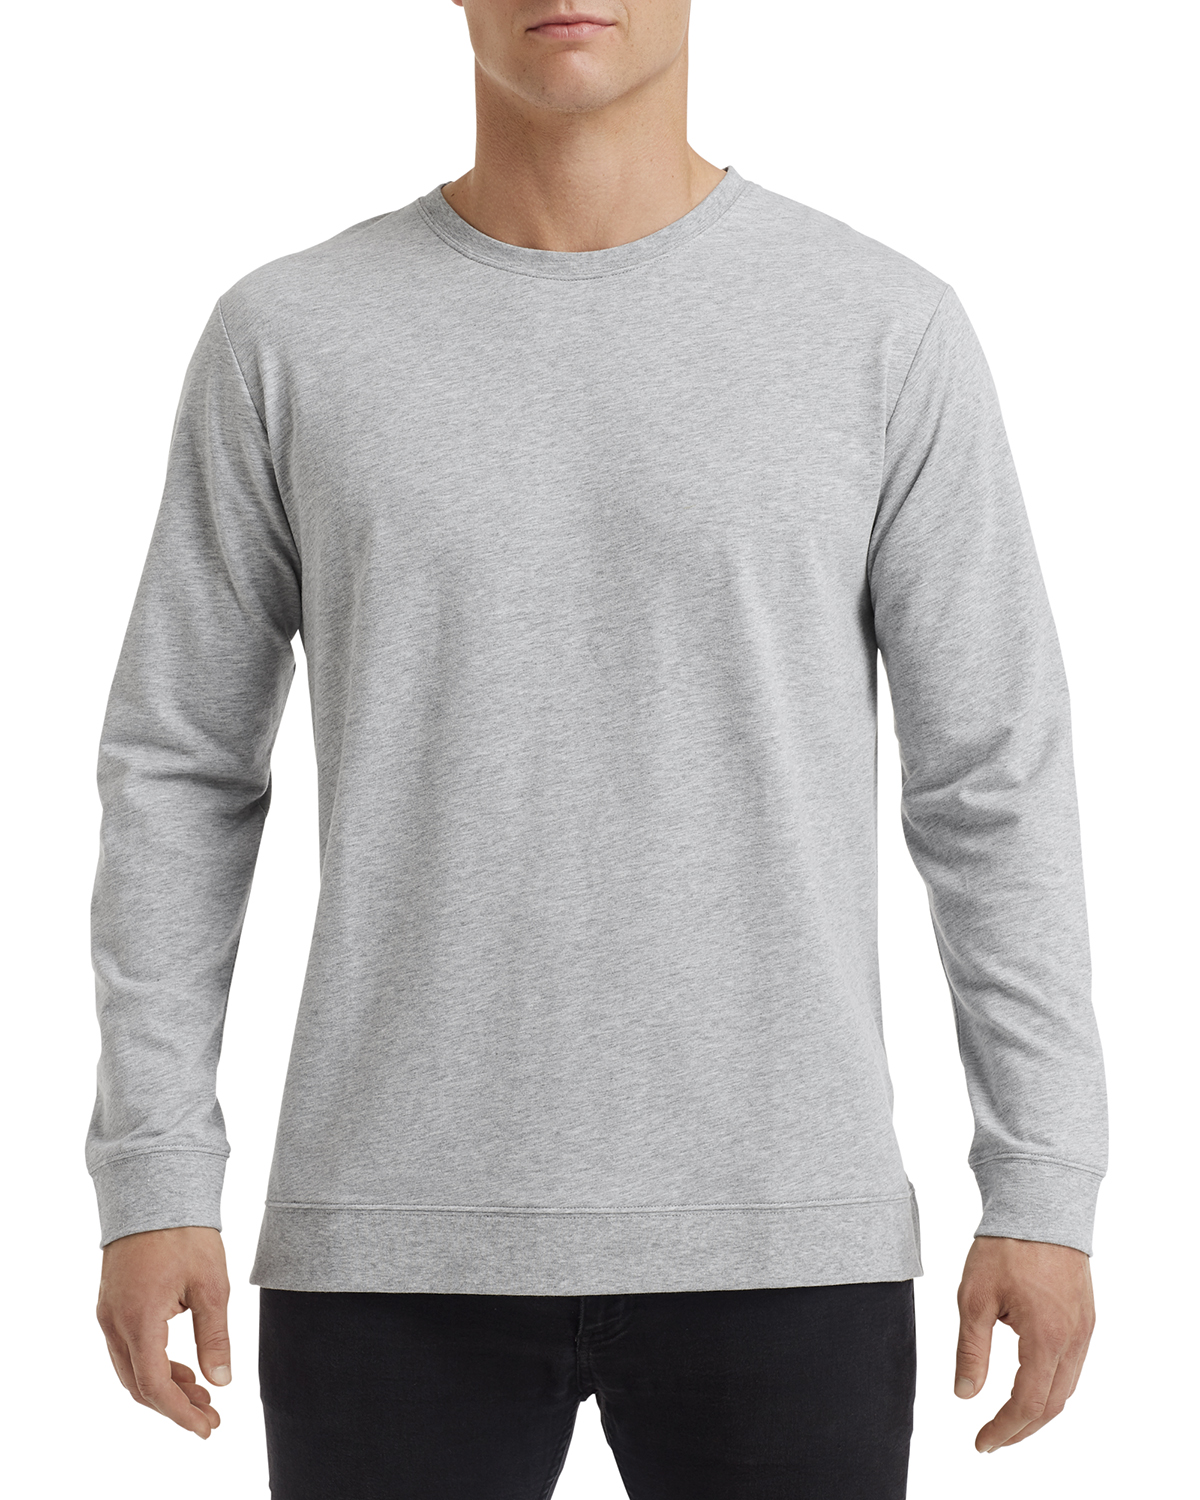 Anvil 73000 Unisex Light Terry Crew